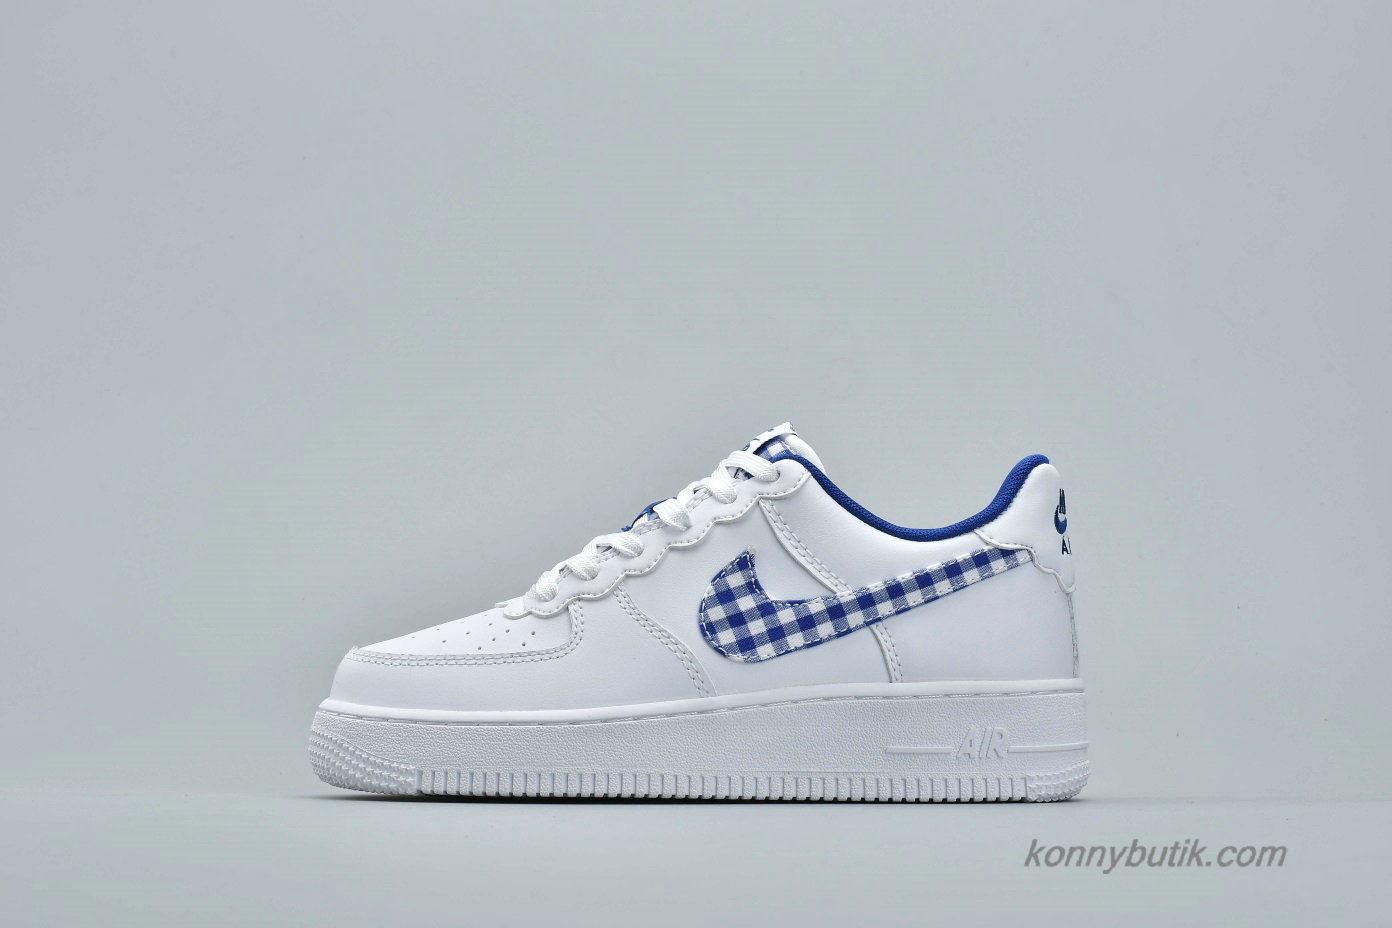 Nike Air Force 1 Low QS Unisex Sko Hvid / Blå (AV6232-100)